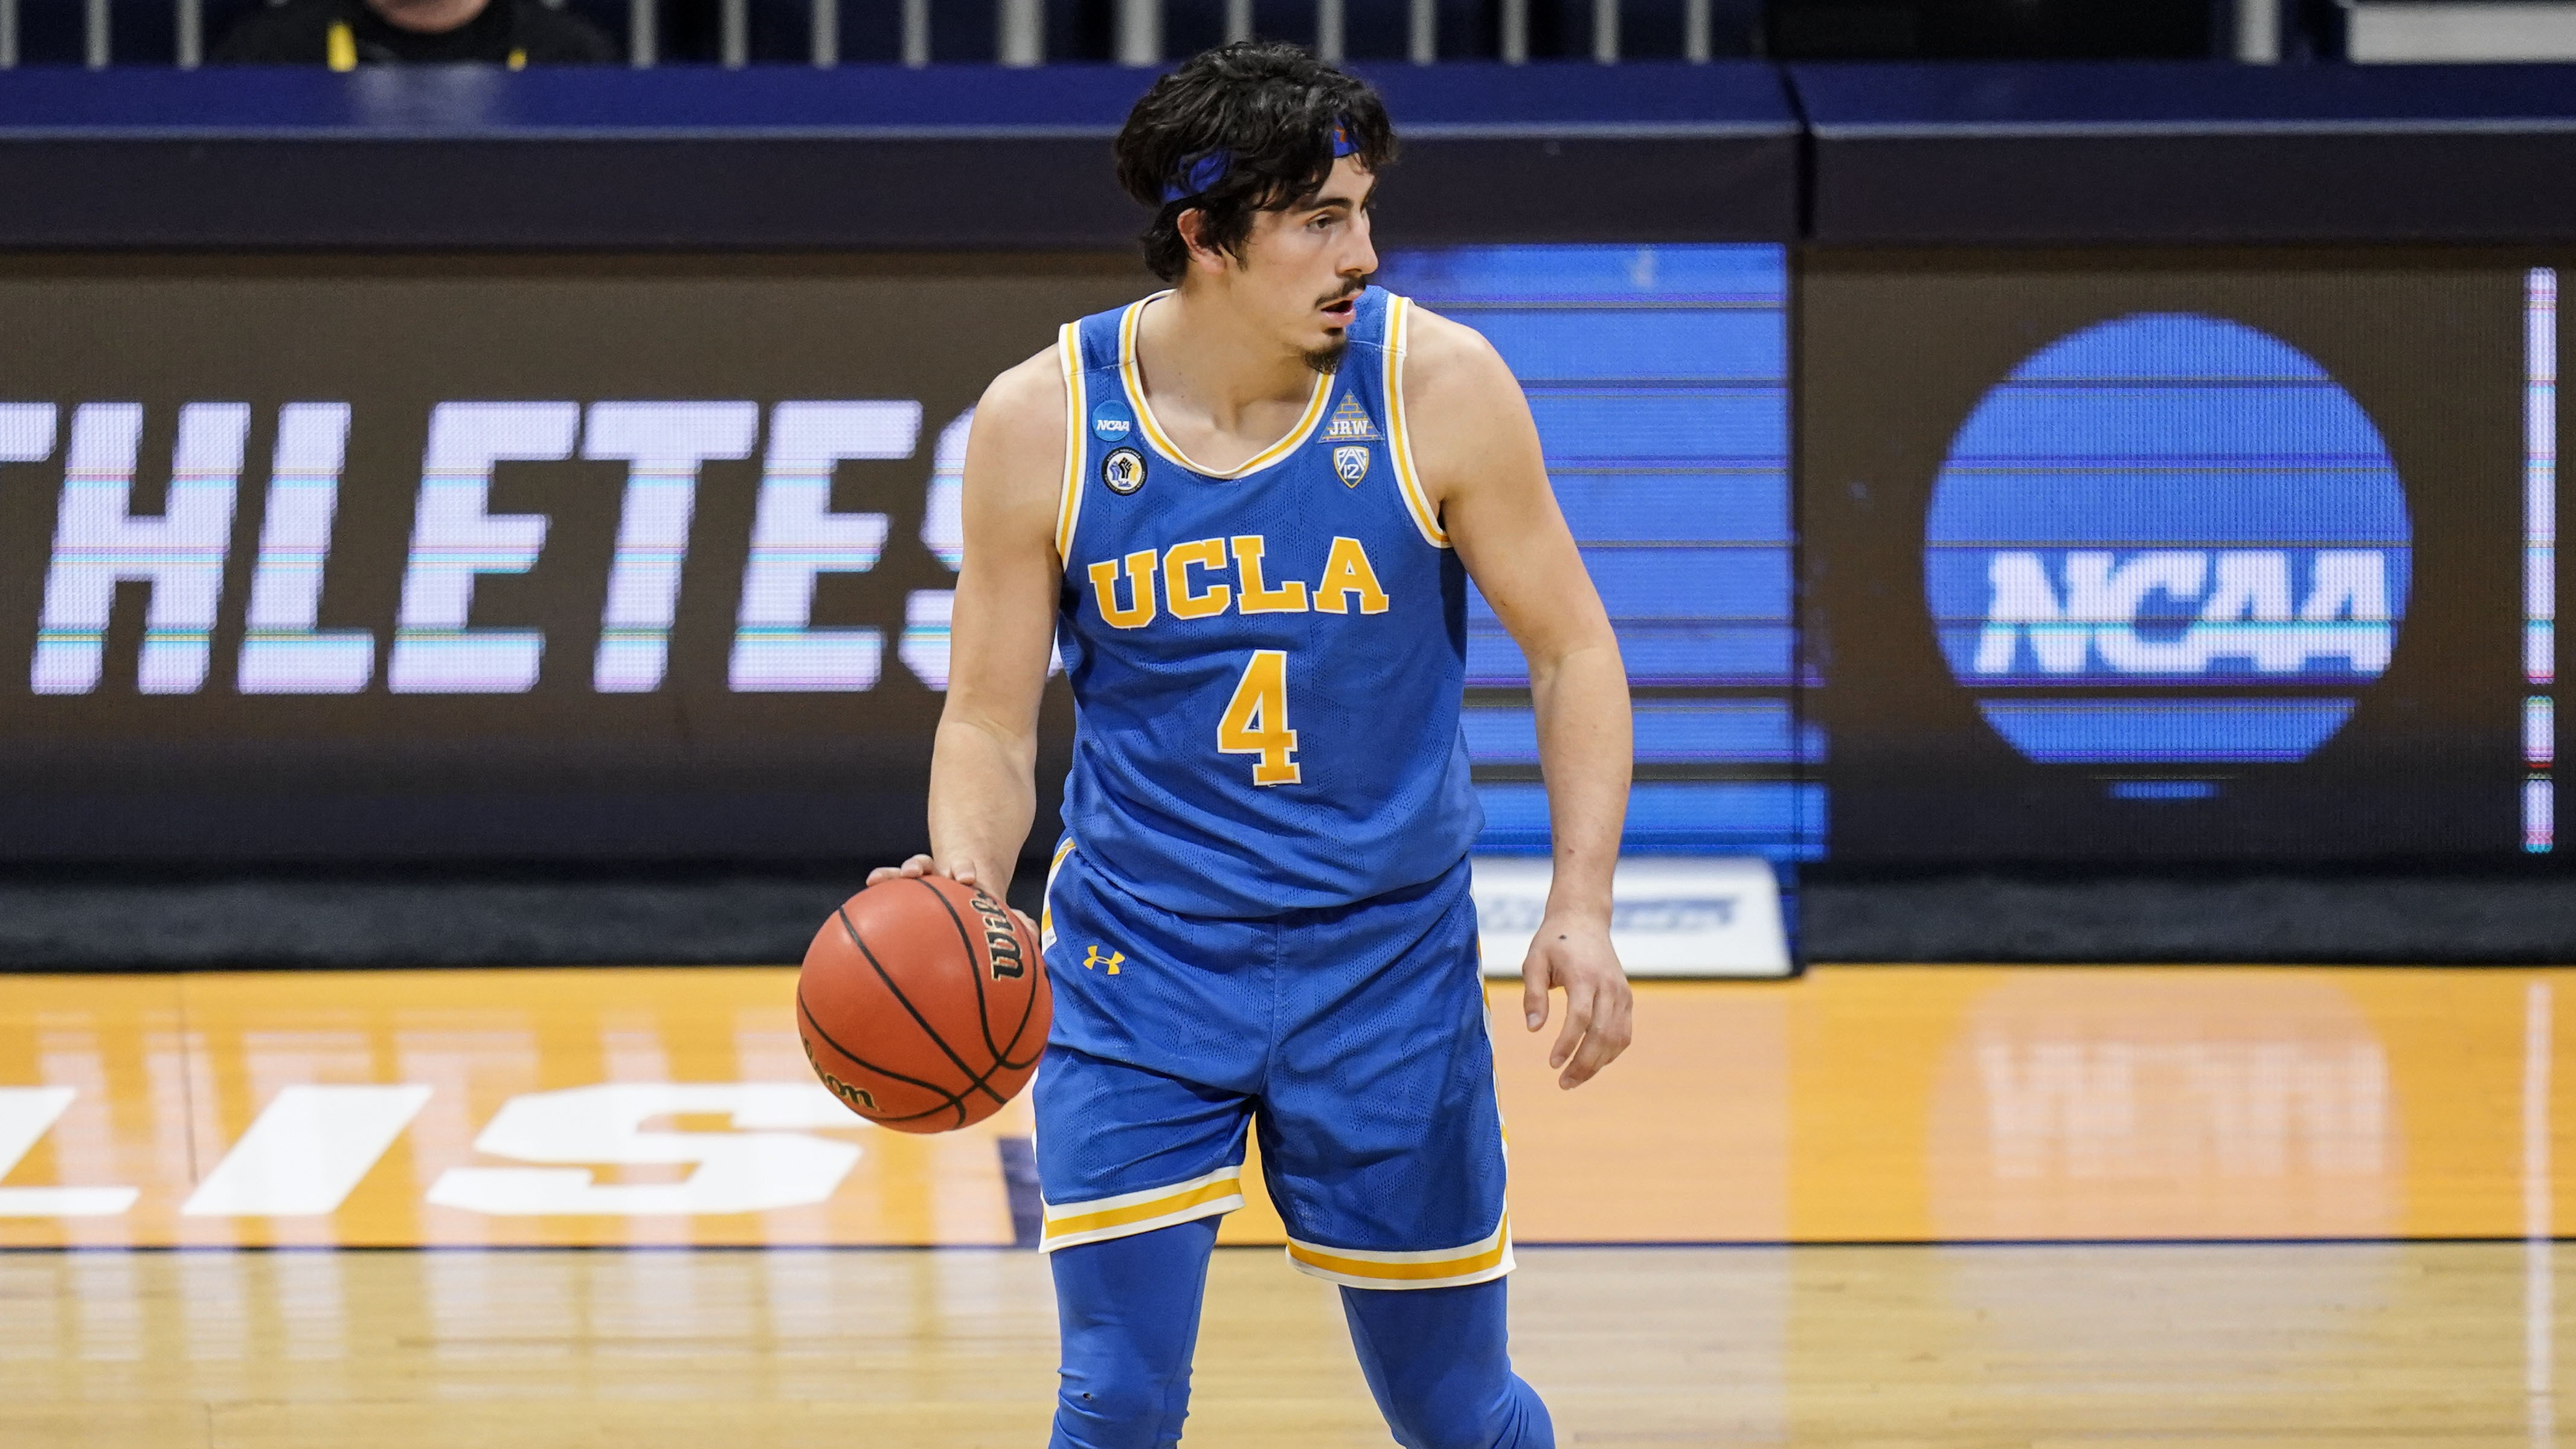 UCLA guard Jaime Jaquez Jr. (4) in action during a college basketball game in the first round of the NCAA tournament at Hinkle Fieldhouse in Indianapolis, Saturday, March 20, 2021.